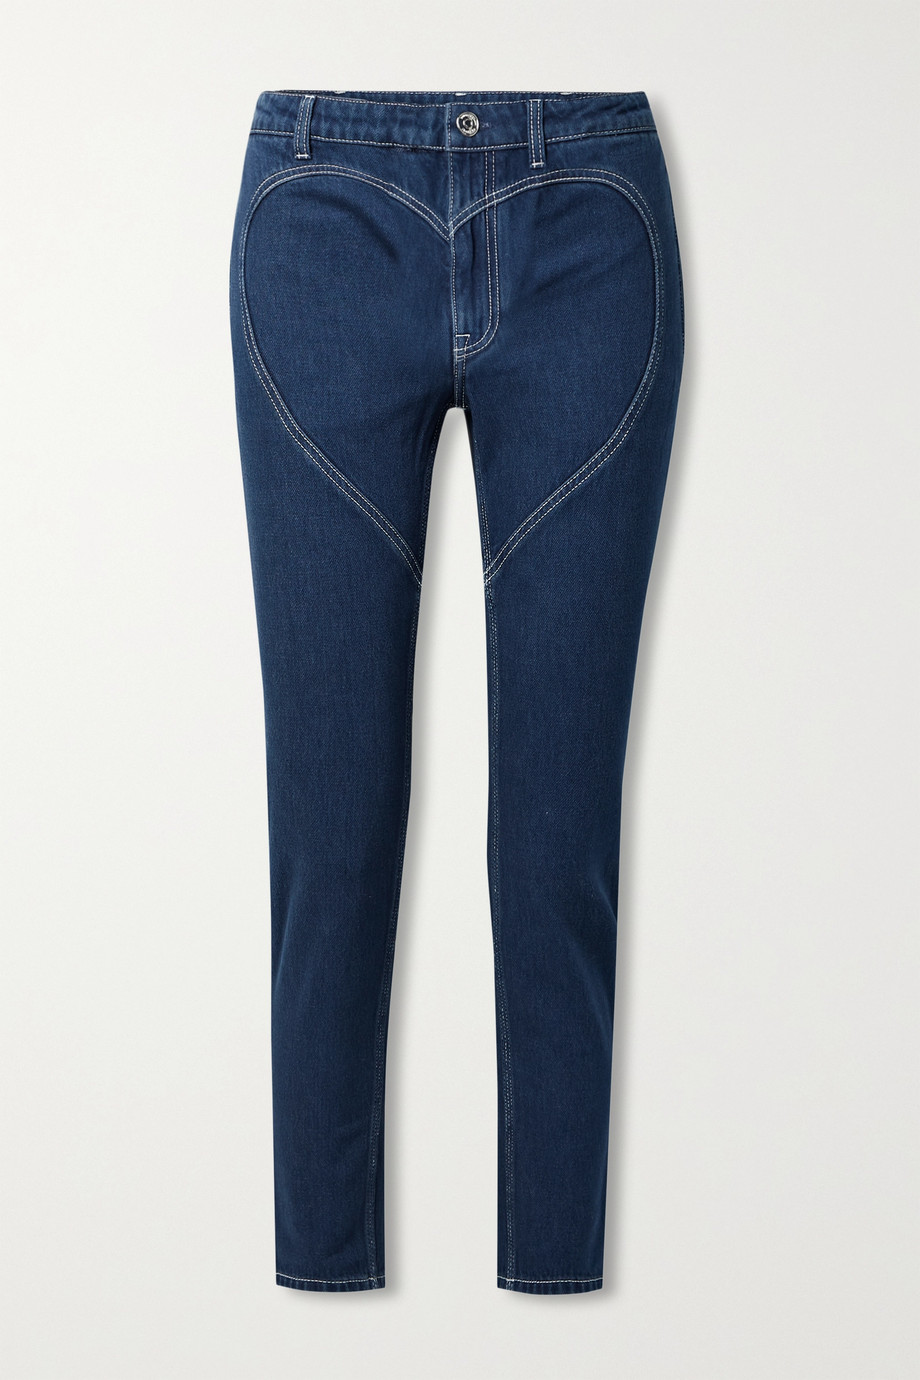 Burberry High-rise skinny jeans